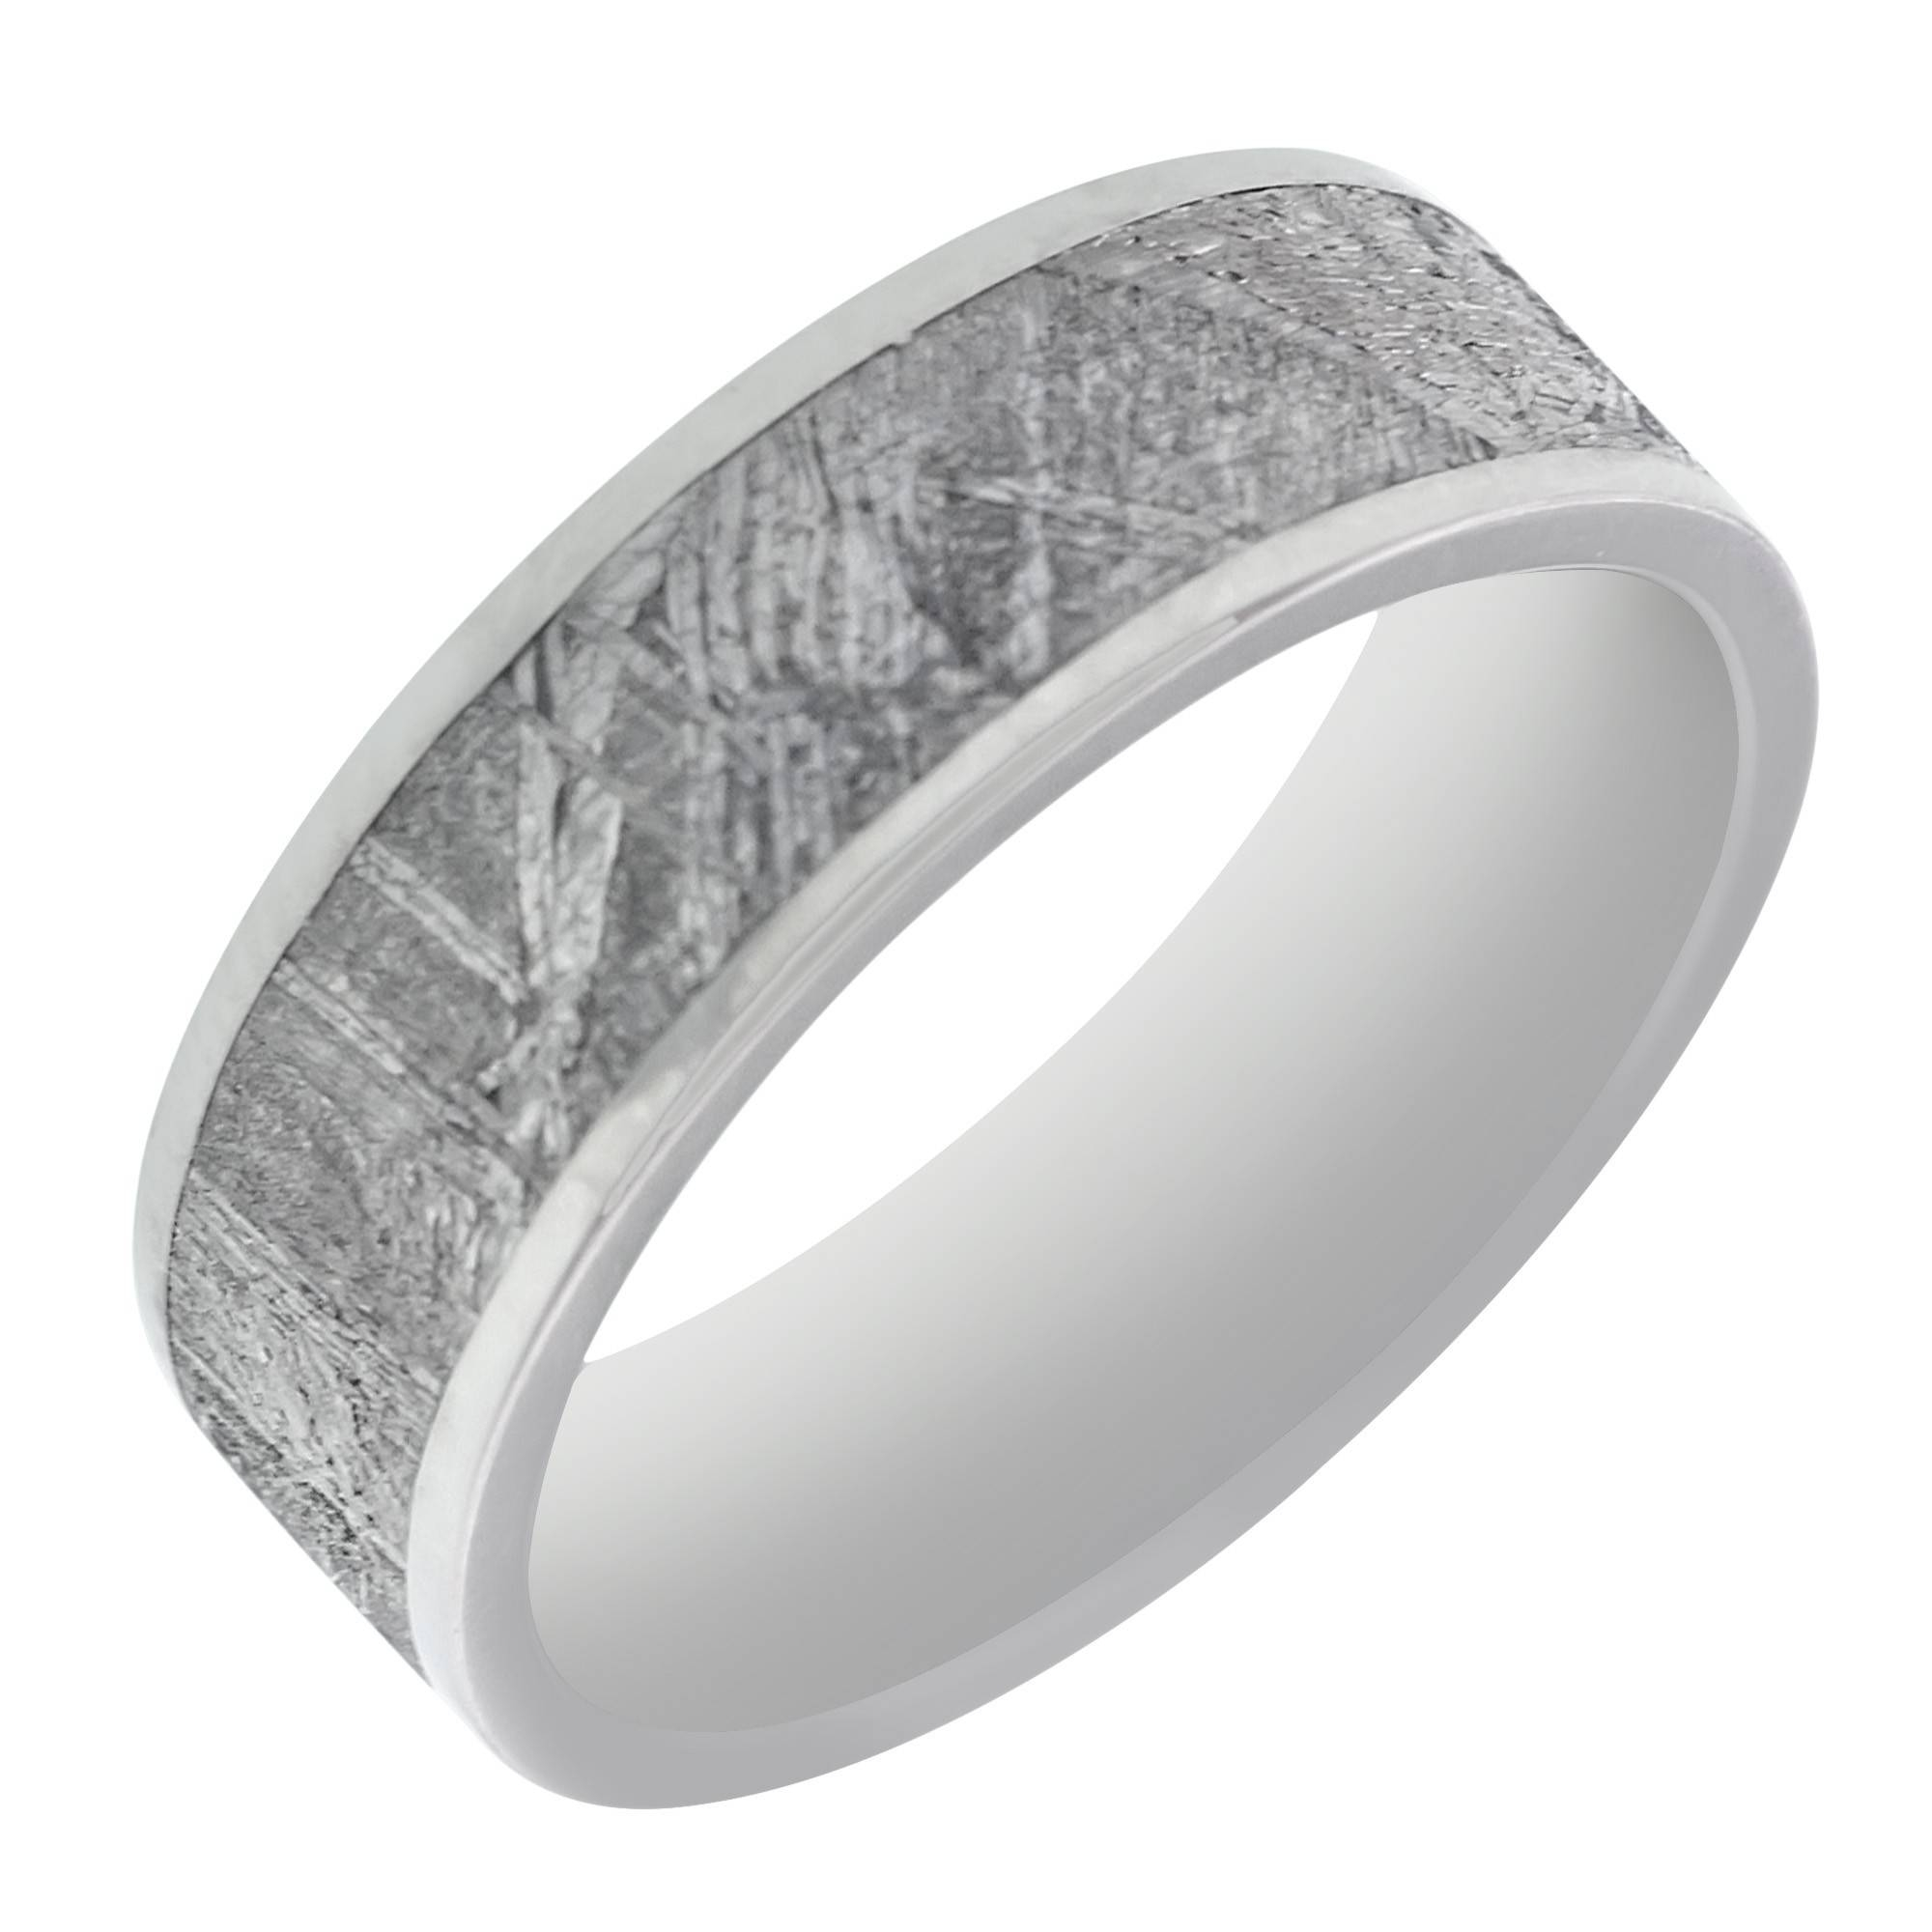 Mens Meteorite Wedding Band In Titanium (7Mm) Intended For Men's Wedding Bands Meteorite (View 4 of 15)